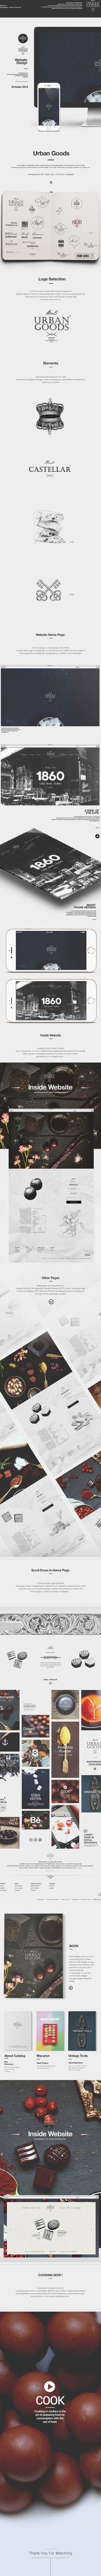 http://www.webdesignserved.com/gallery/A-conceptual-vintage-design-for-a-chocolate-brand/20252845